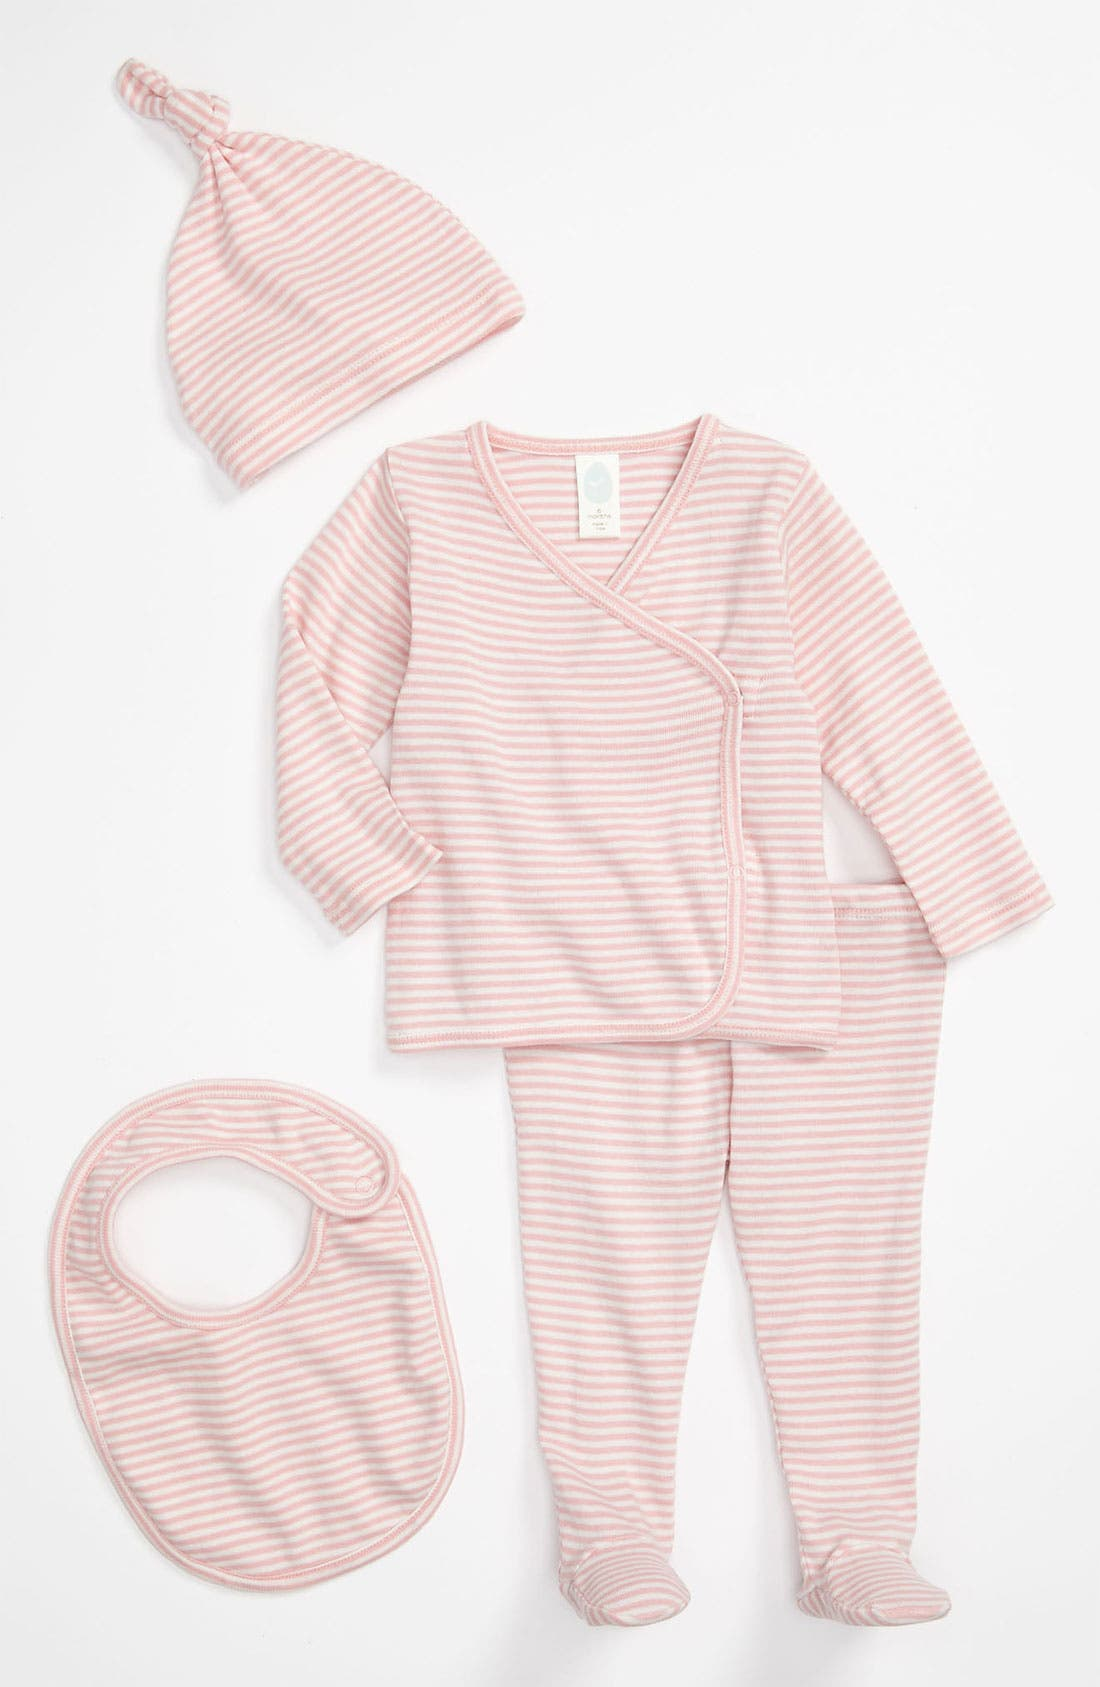 Alternate Image 1 Selected - Stem Baby Organic Cotton Shirt, Pants, Hat & Bib (Baby)